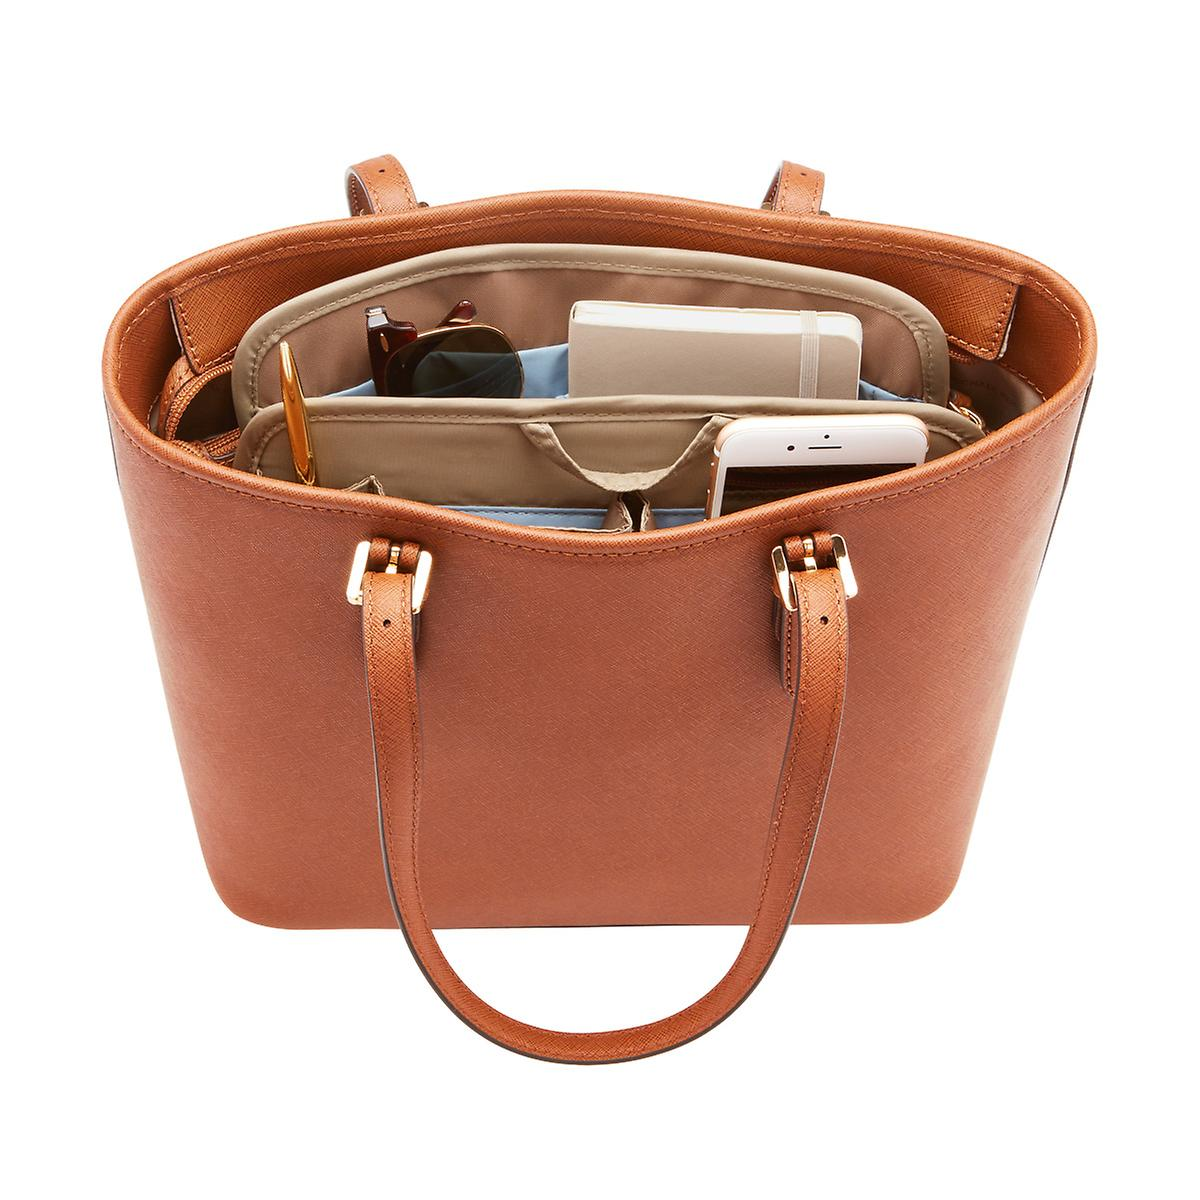 Shop for purse organizers online at trueffil983.gq More. Pay Less. · Everyday Savings · 5% Off W/ REDcard · Same Day Store Pick-UpStyles: Bags, Purses, Hats, Belts, Scarves, Totes, Sunglasses, Handbags, Gloves, Sashes.